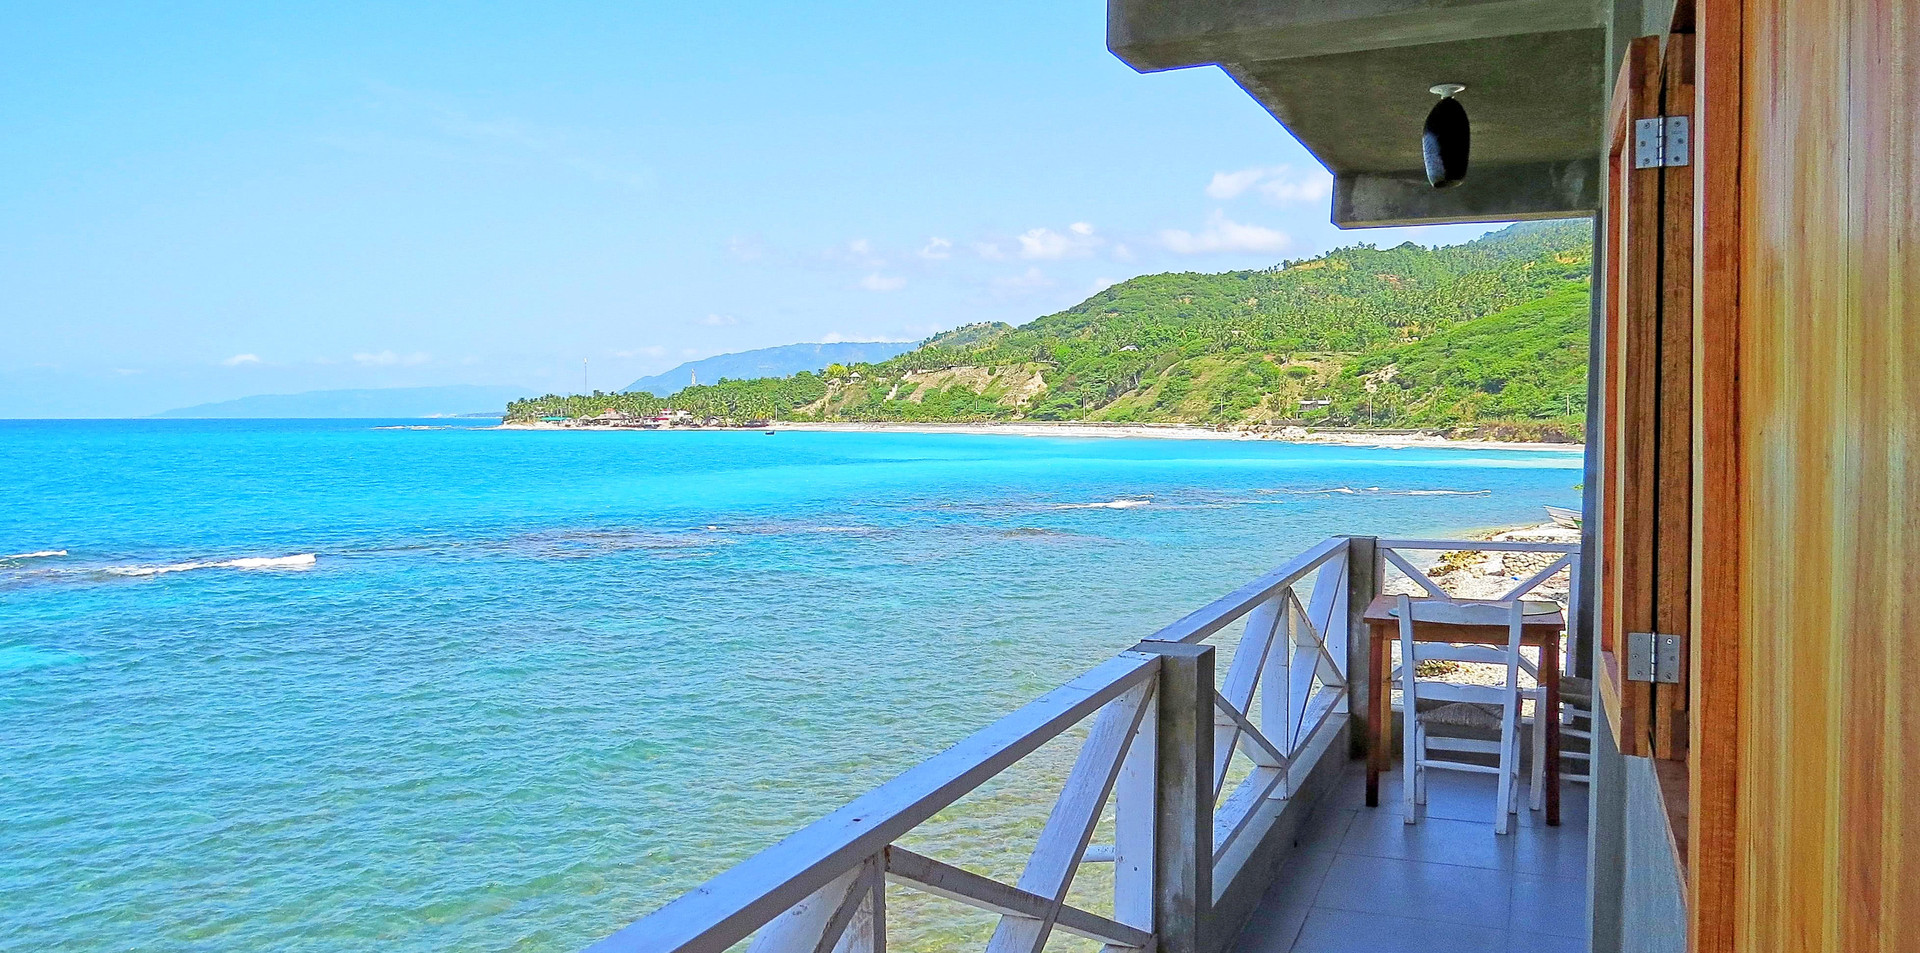 Your Private Ocean Balcony